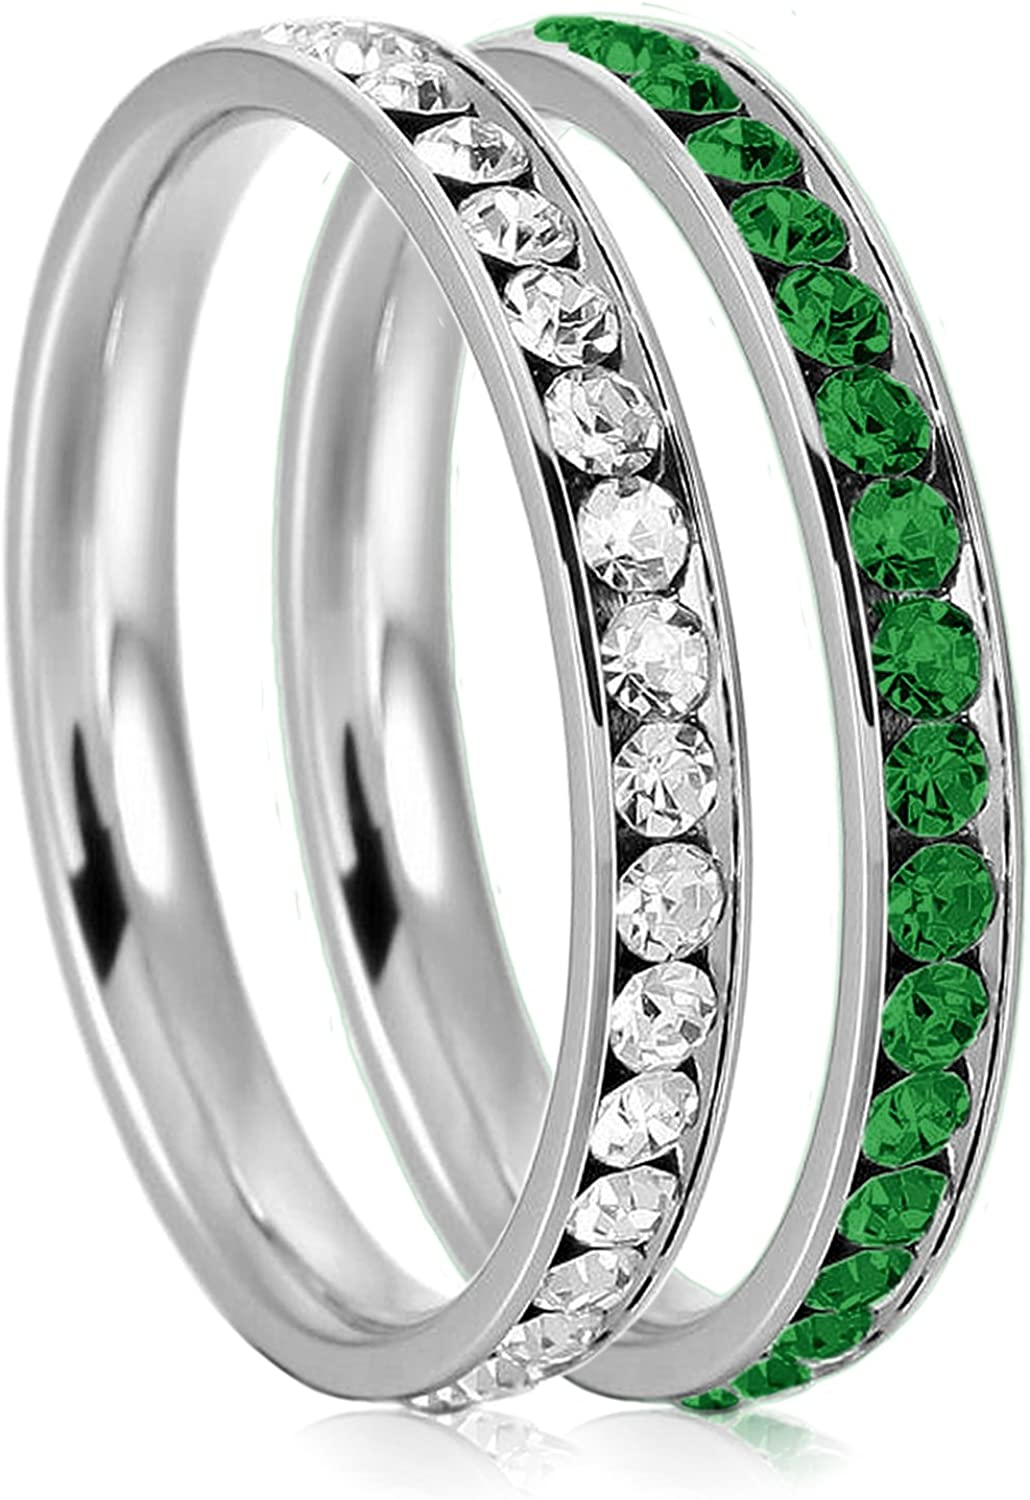 3mm Stainless Steel Eternity Clear Emerald Color Omaha Mall Max 49% OFF Crystal Stack